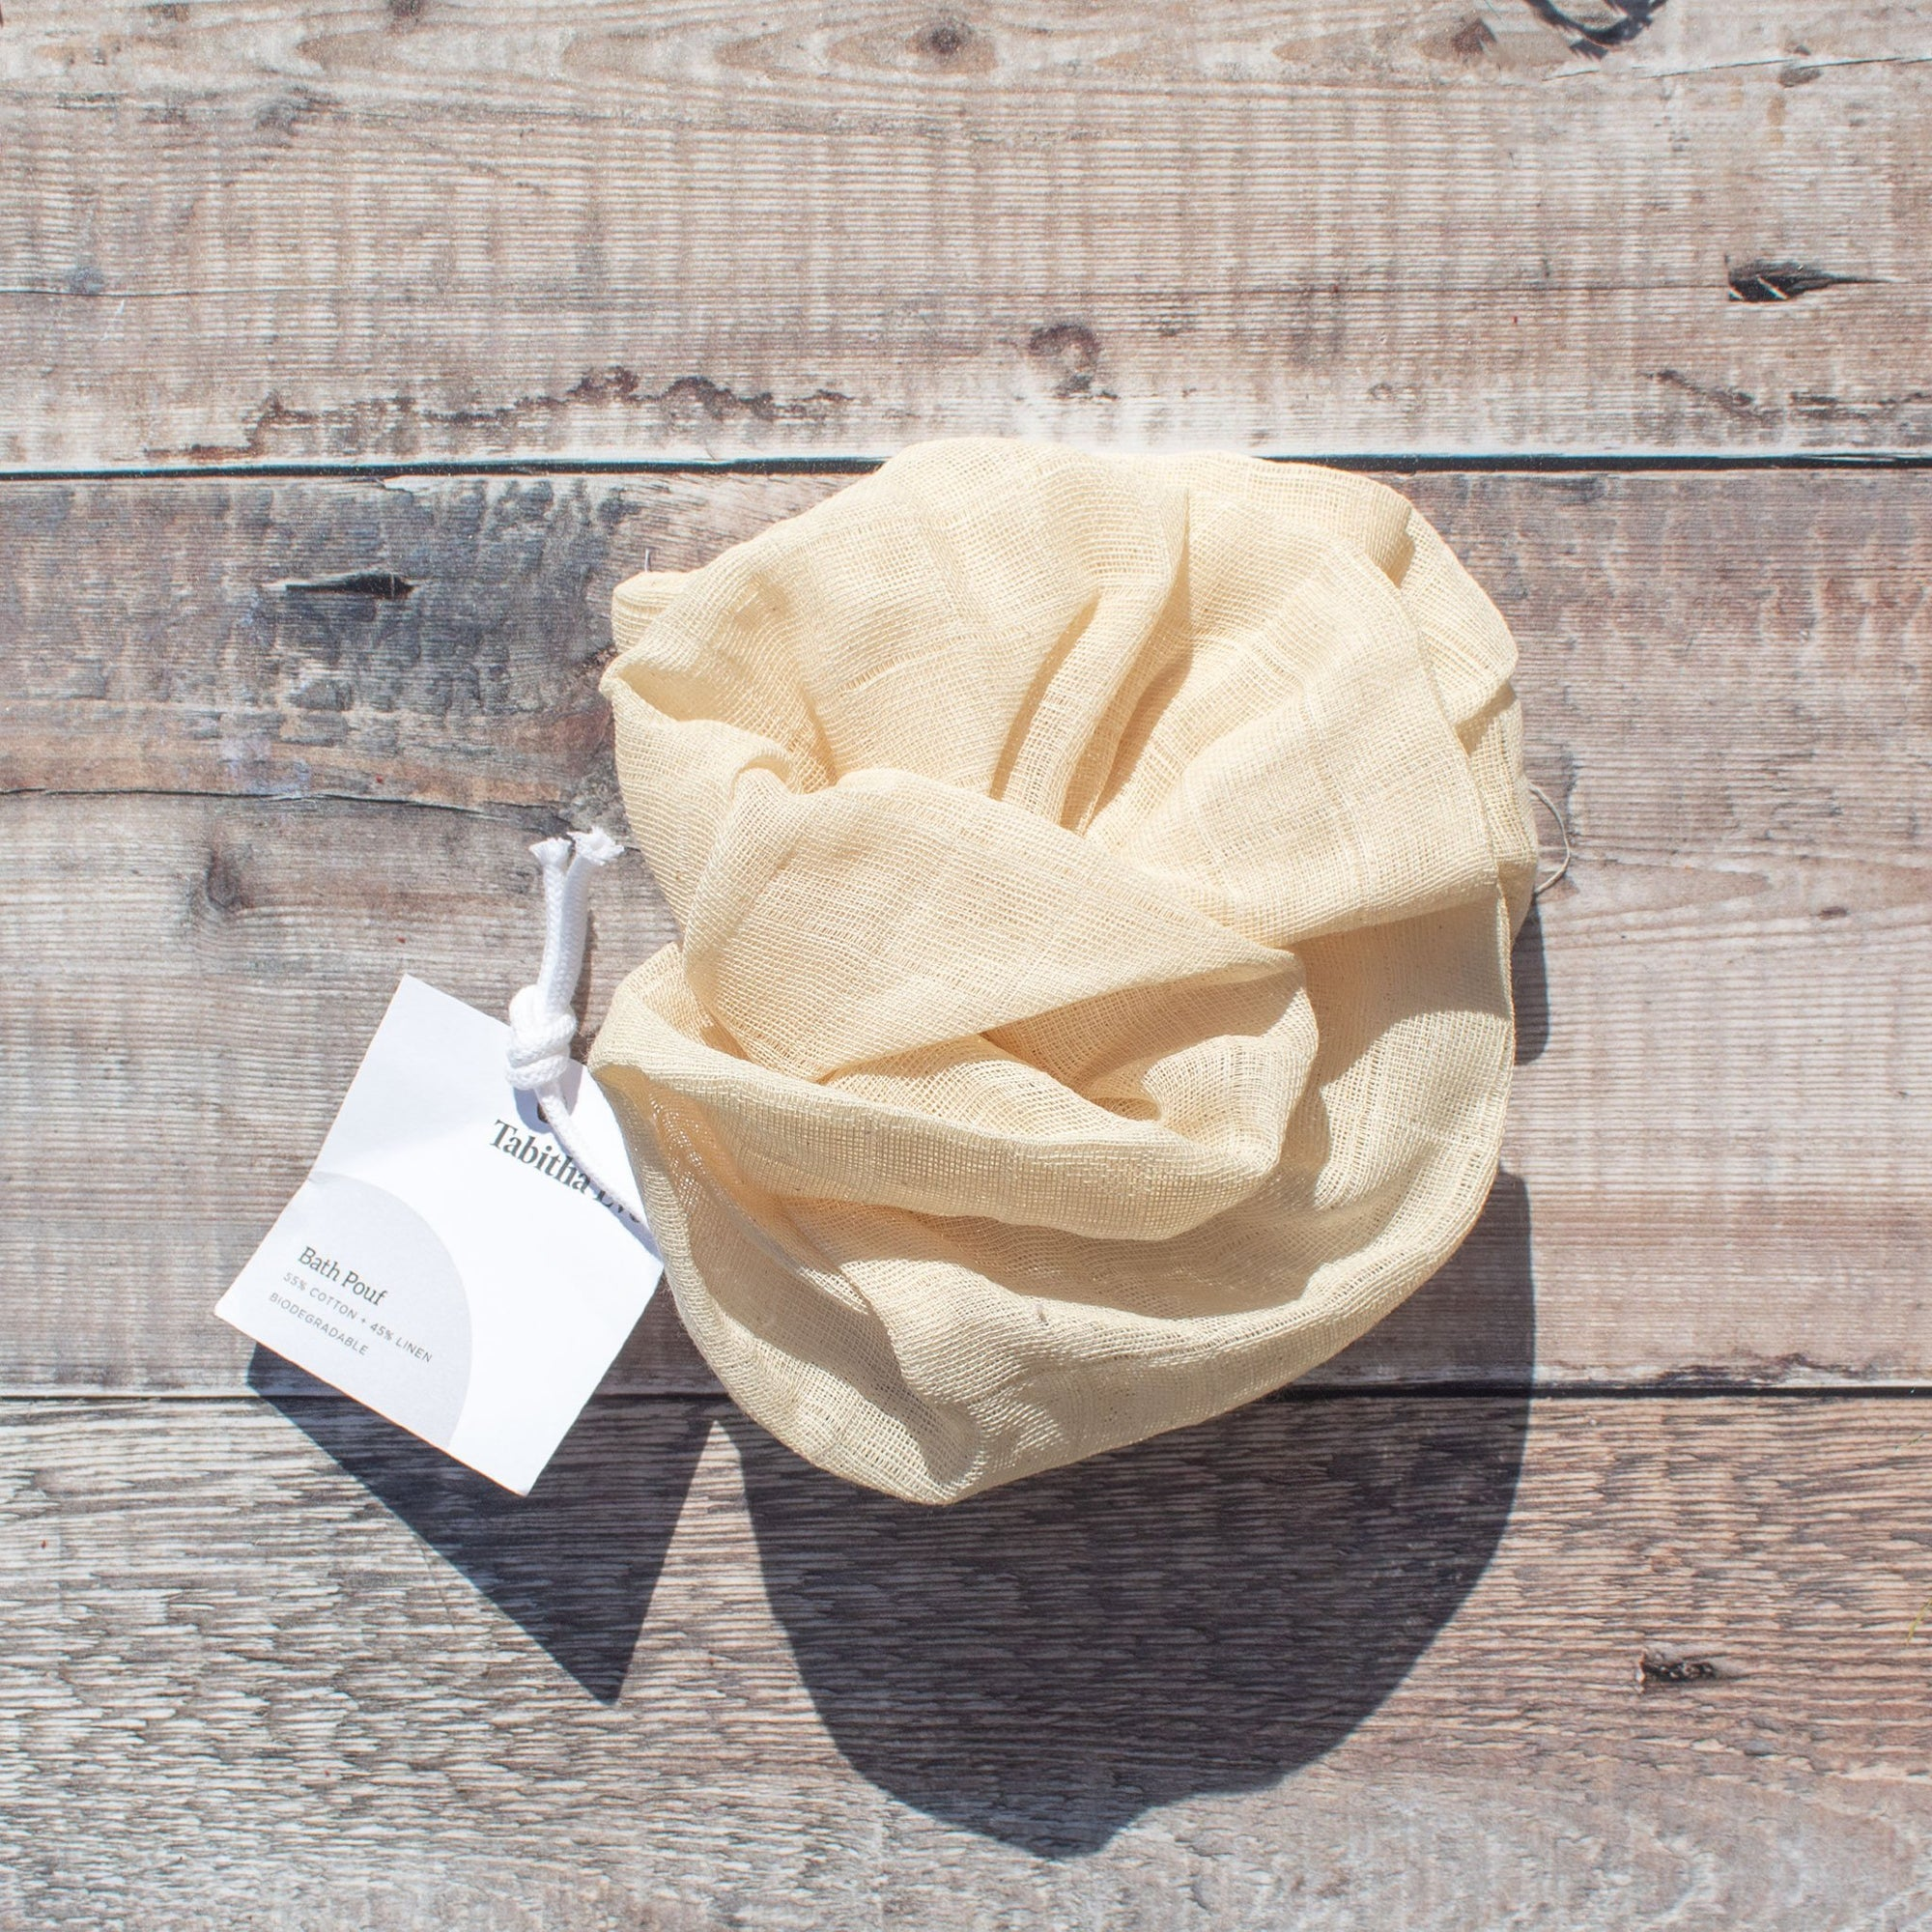 Organic Cotton Bath Pouf | Flannel - The Naughty Shrew